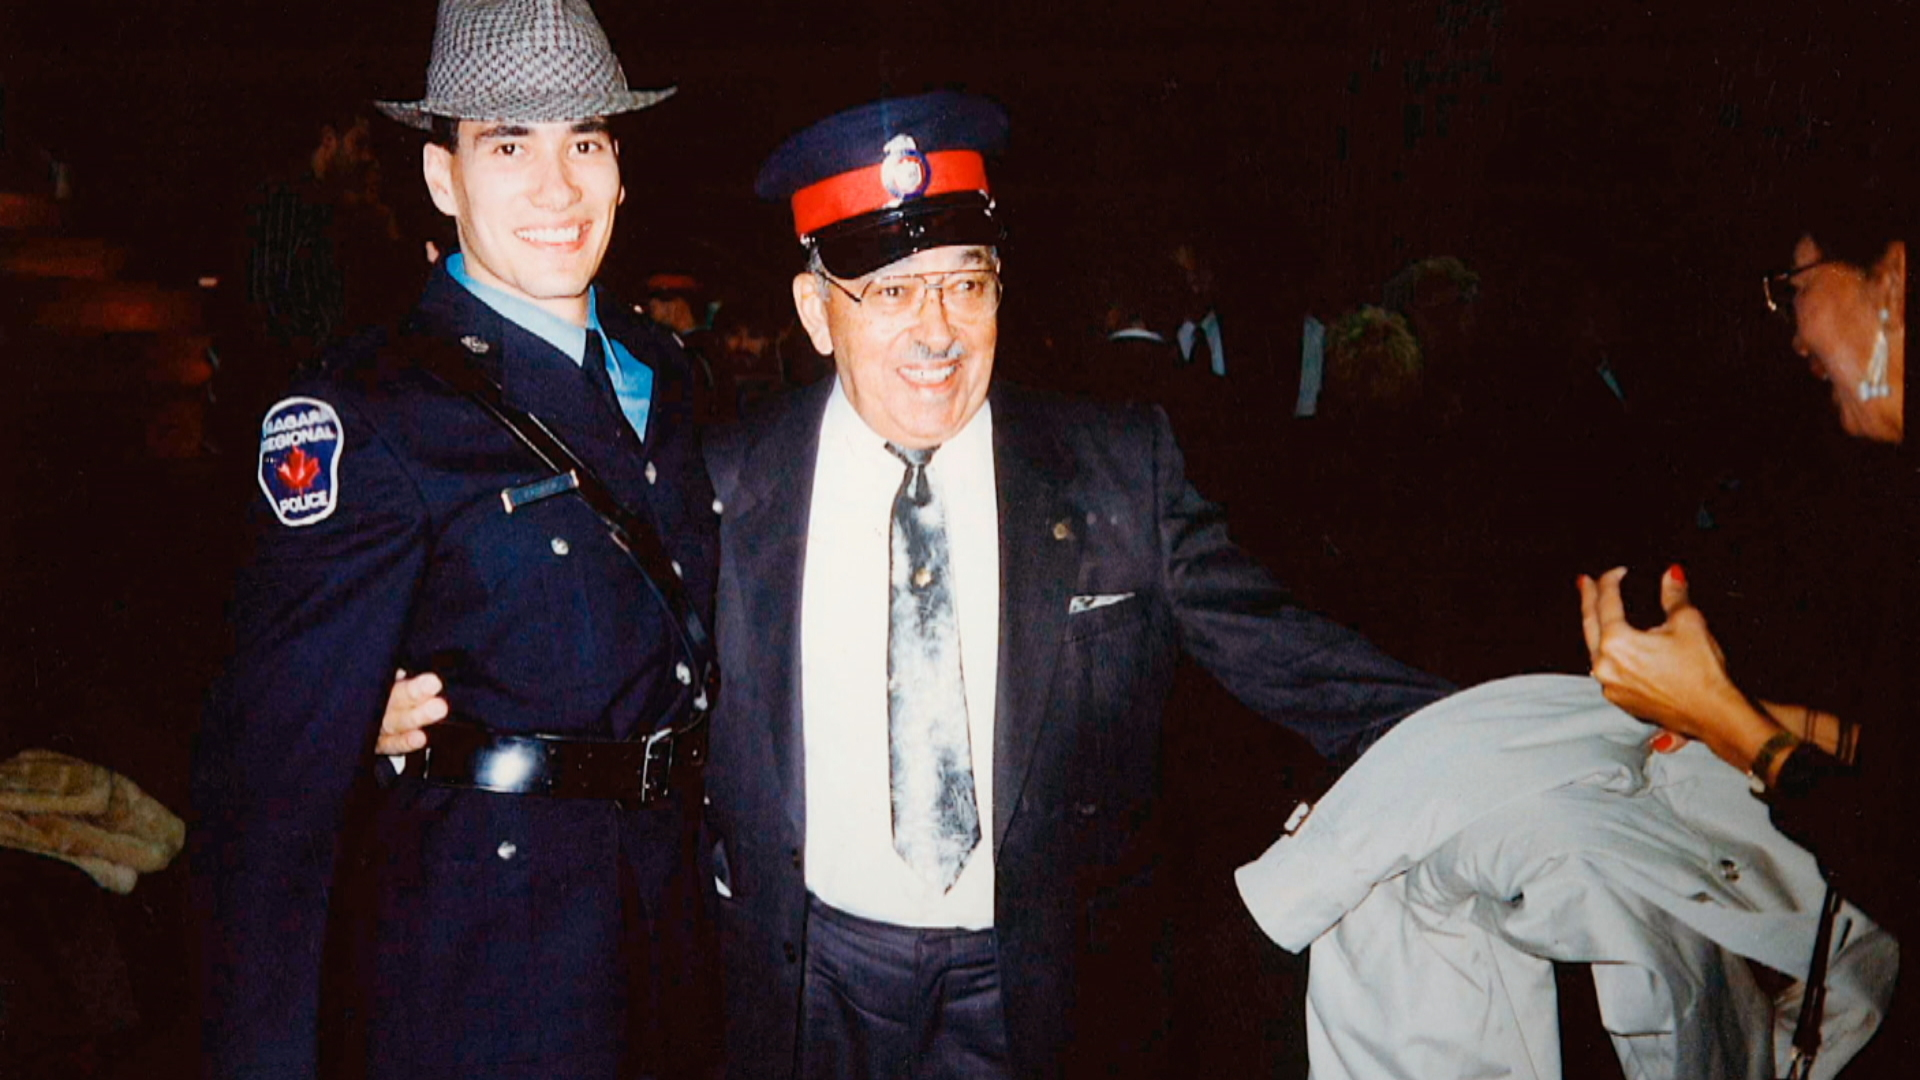 Nathan Parker's grandfather attended his 1990 Ontario Police College graduation and swapped hats with him for this photo, according to Nathan's brother, Phillip Parker. (Submitted by Phillip Parker)